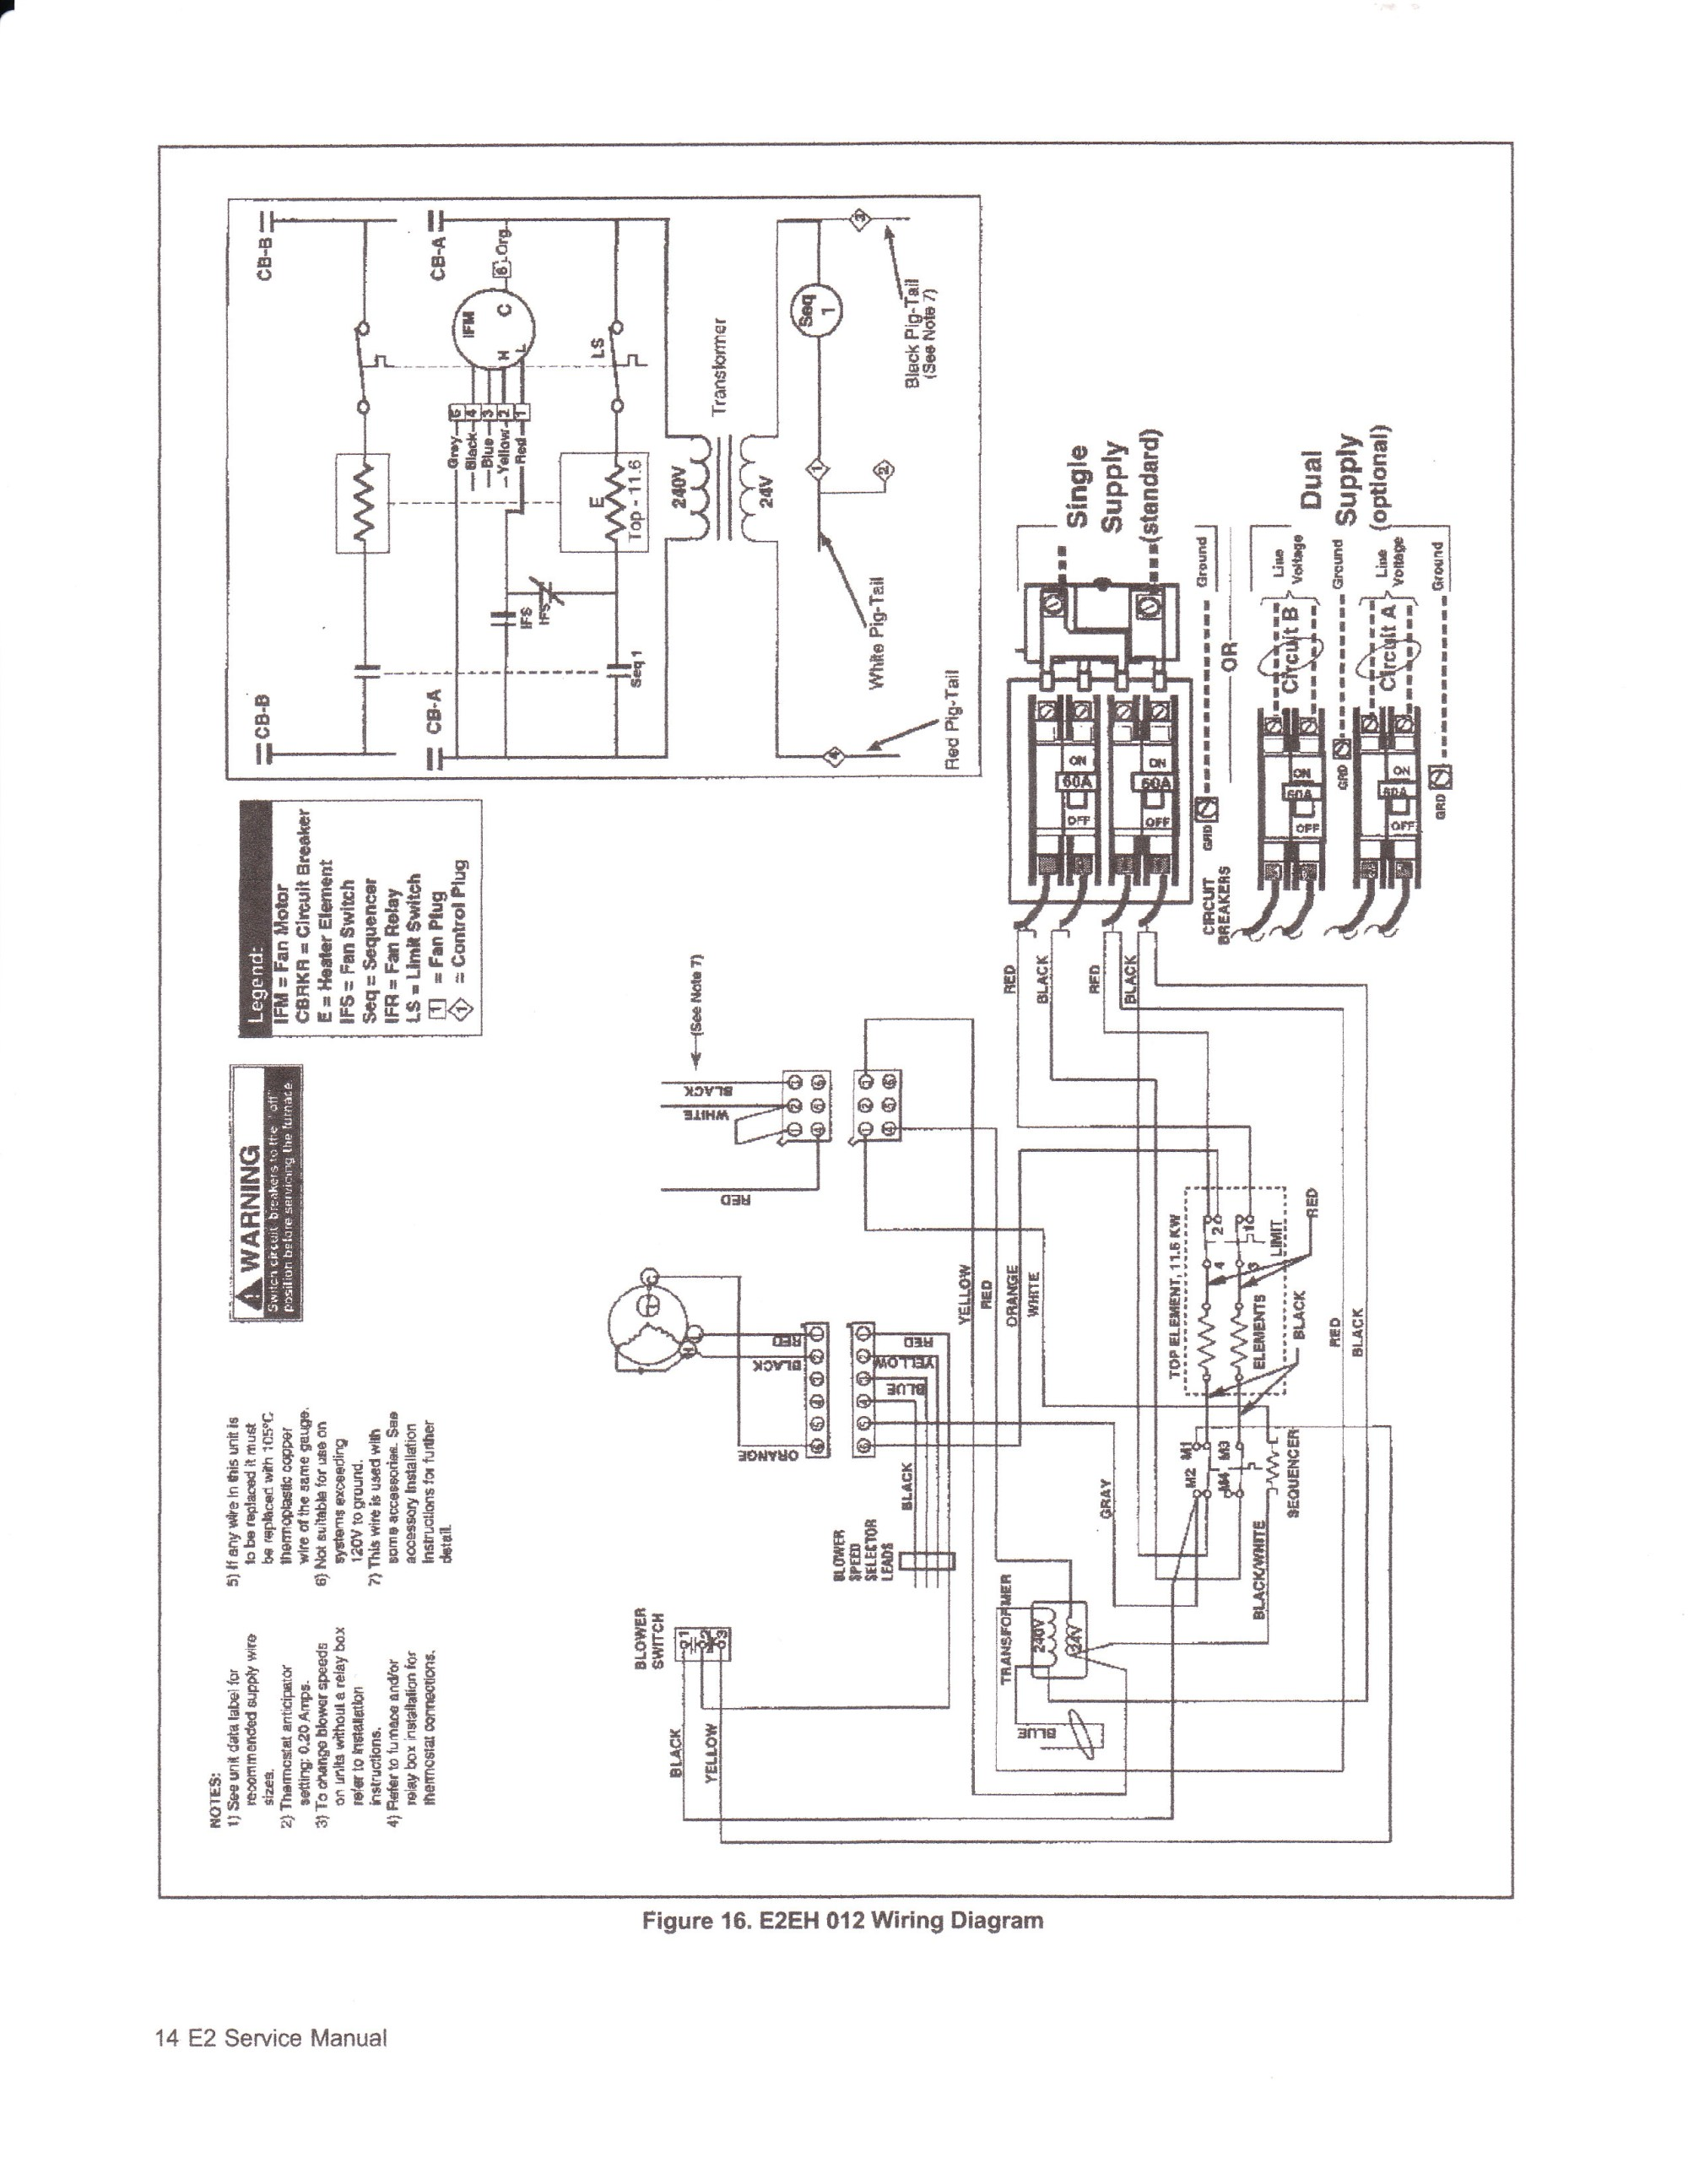 hight resolution of lennox electric furnace wiring diagram wiring diagram paper well pump wire diagram miller